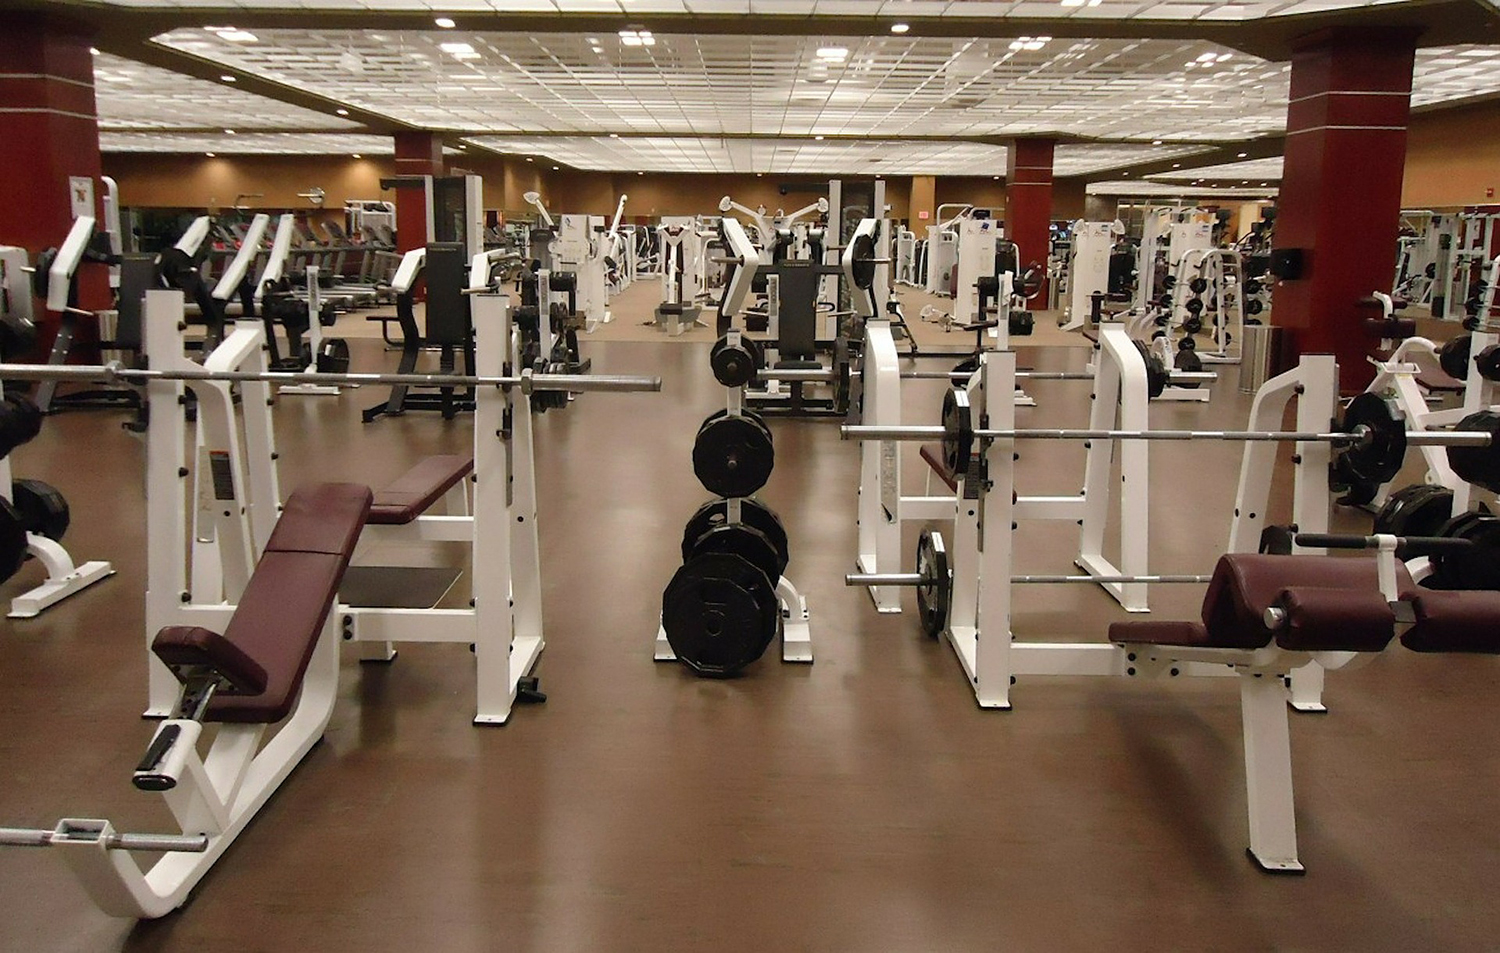 Modern Gym With Free Weights and Machines